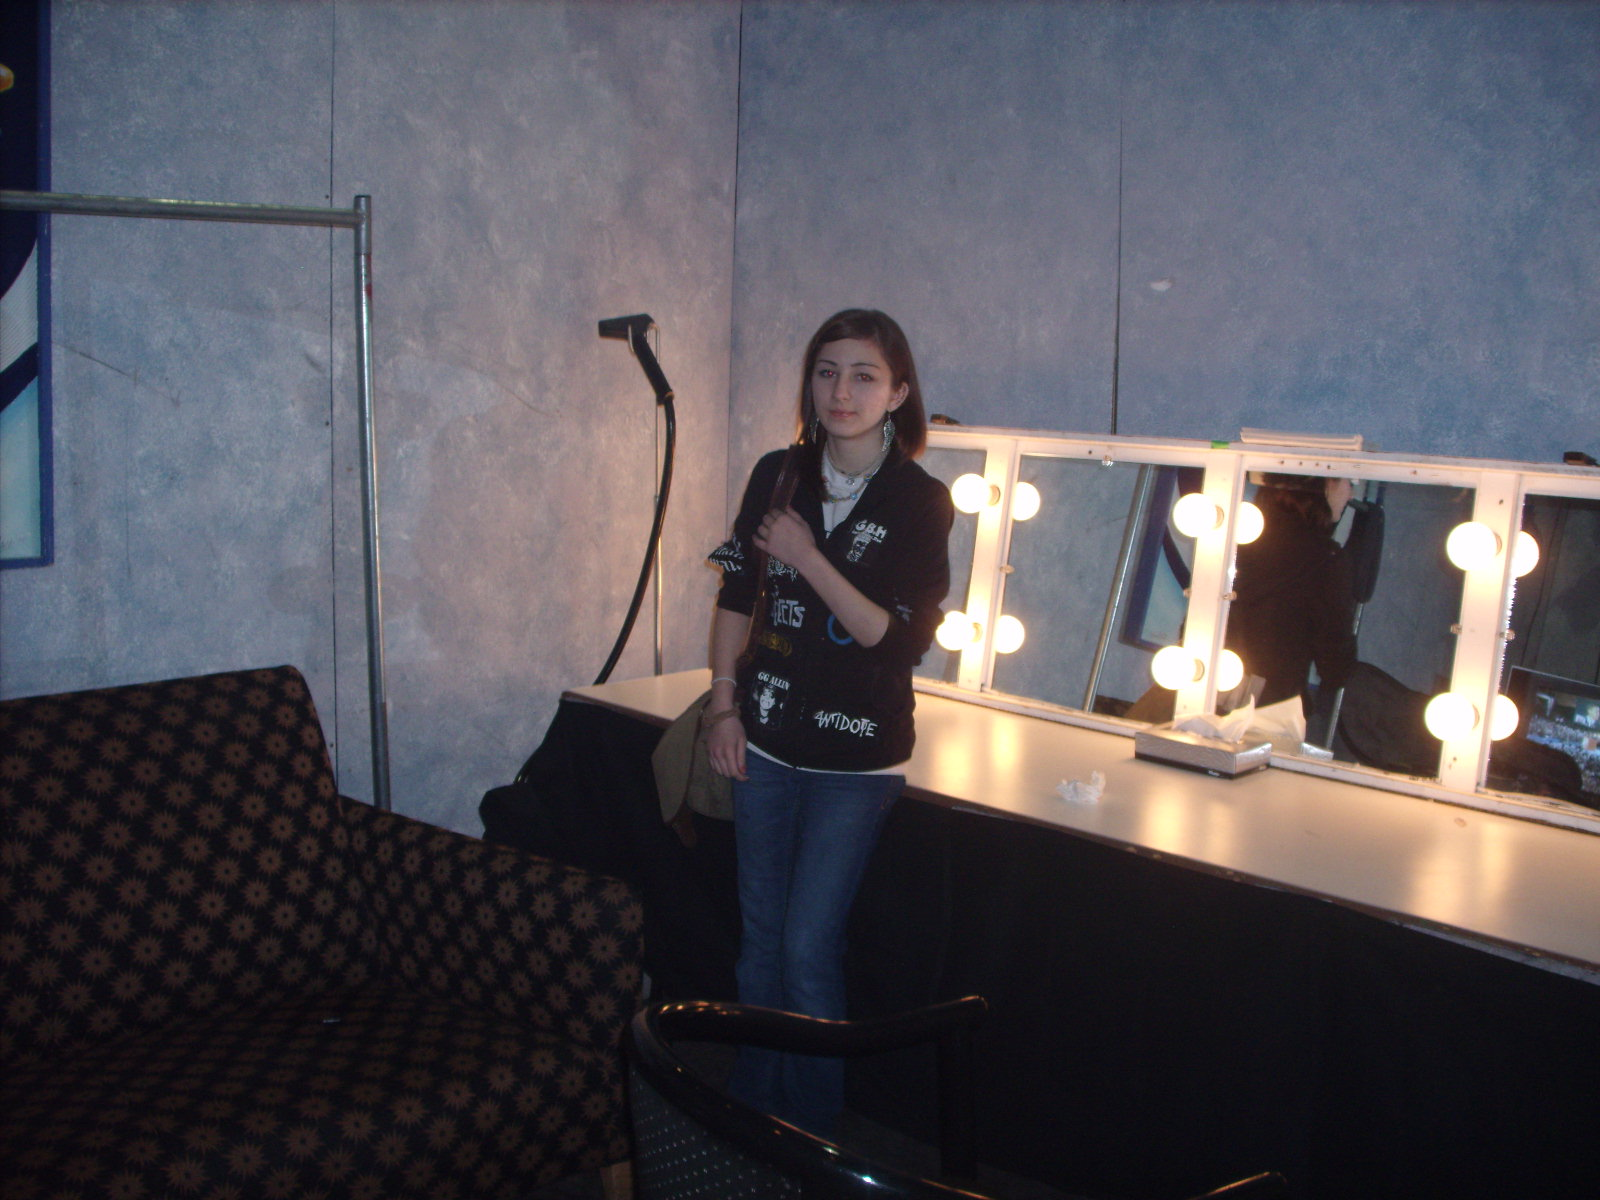 Therese backstage in the dressing room of the Hilton (Atlantic City NJ) Photo: Marion Sadge - webmaster of TomSadge.com